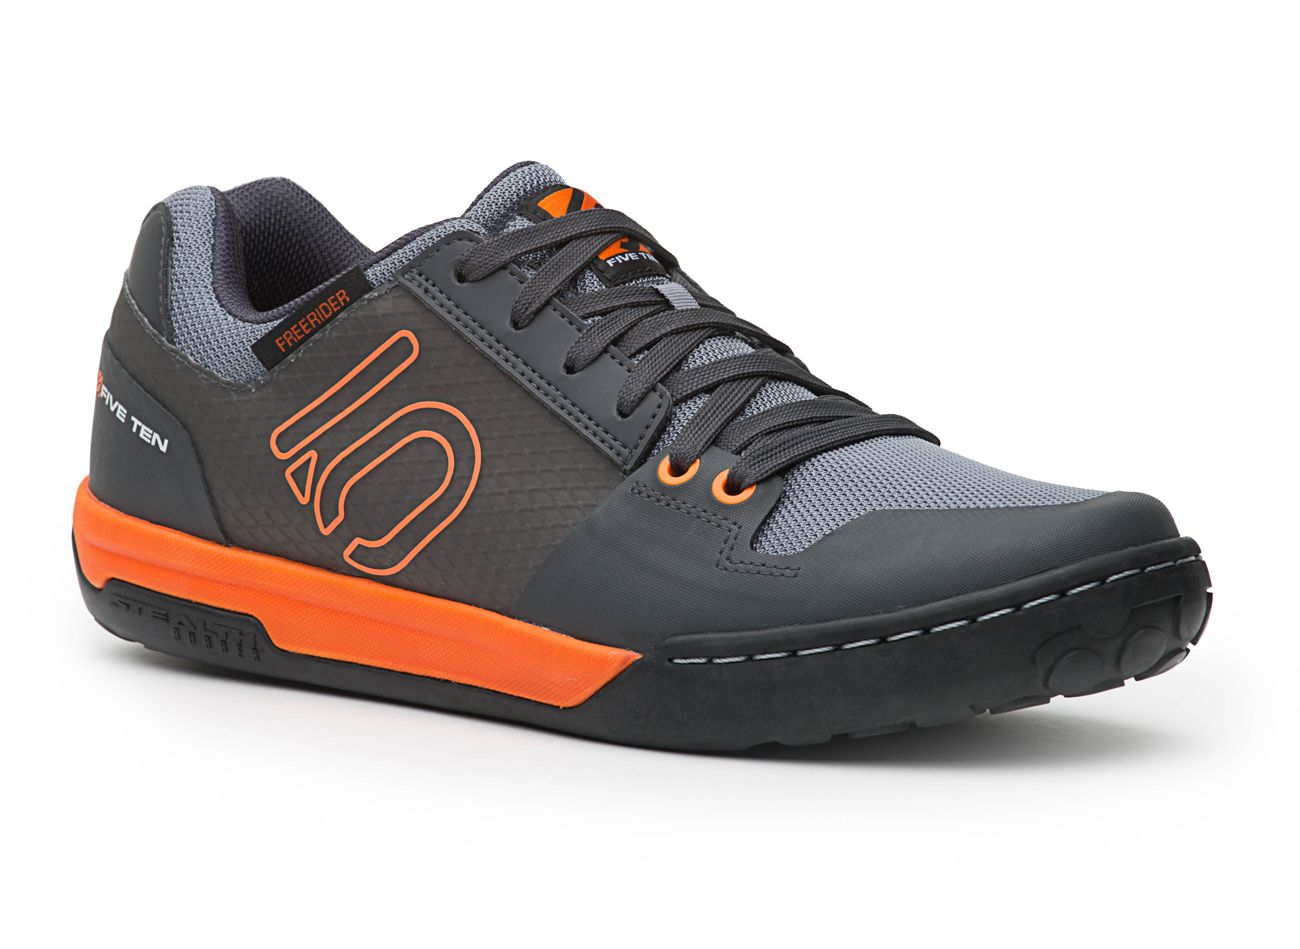 Five Ten Freerider Contact Mountain Biking Shoes – EVA midsole and Stealth Mi6 Rubber